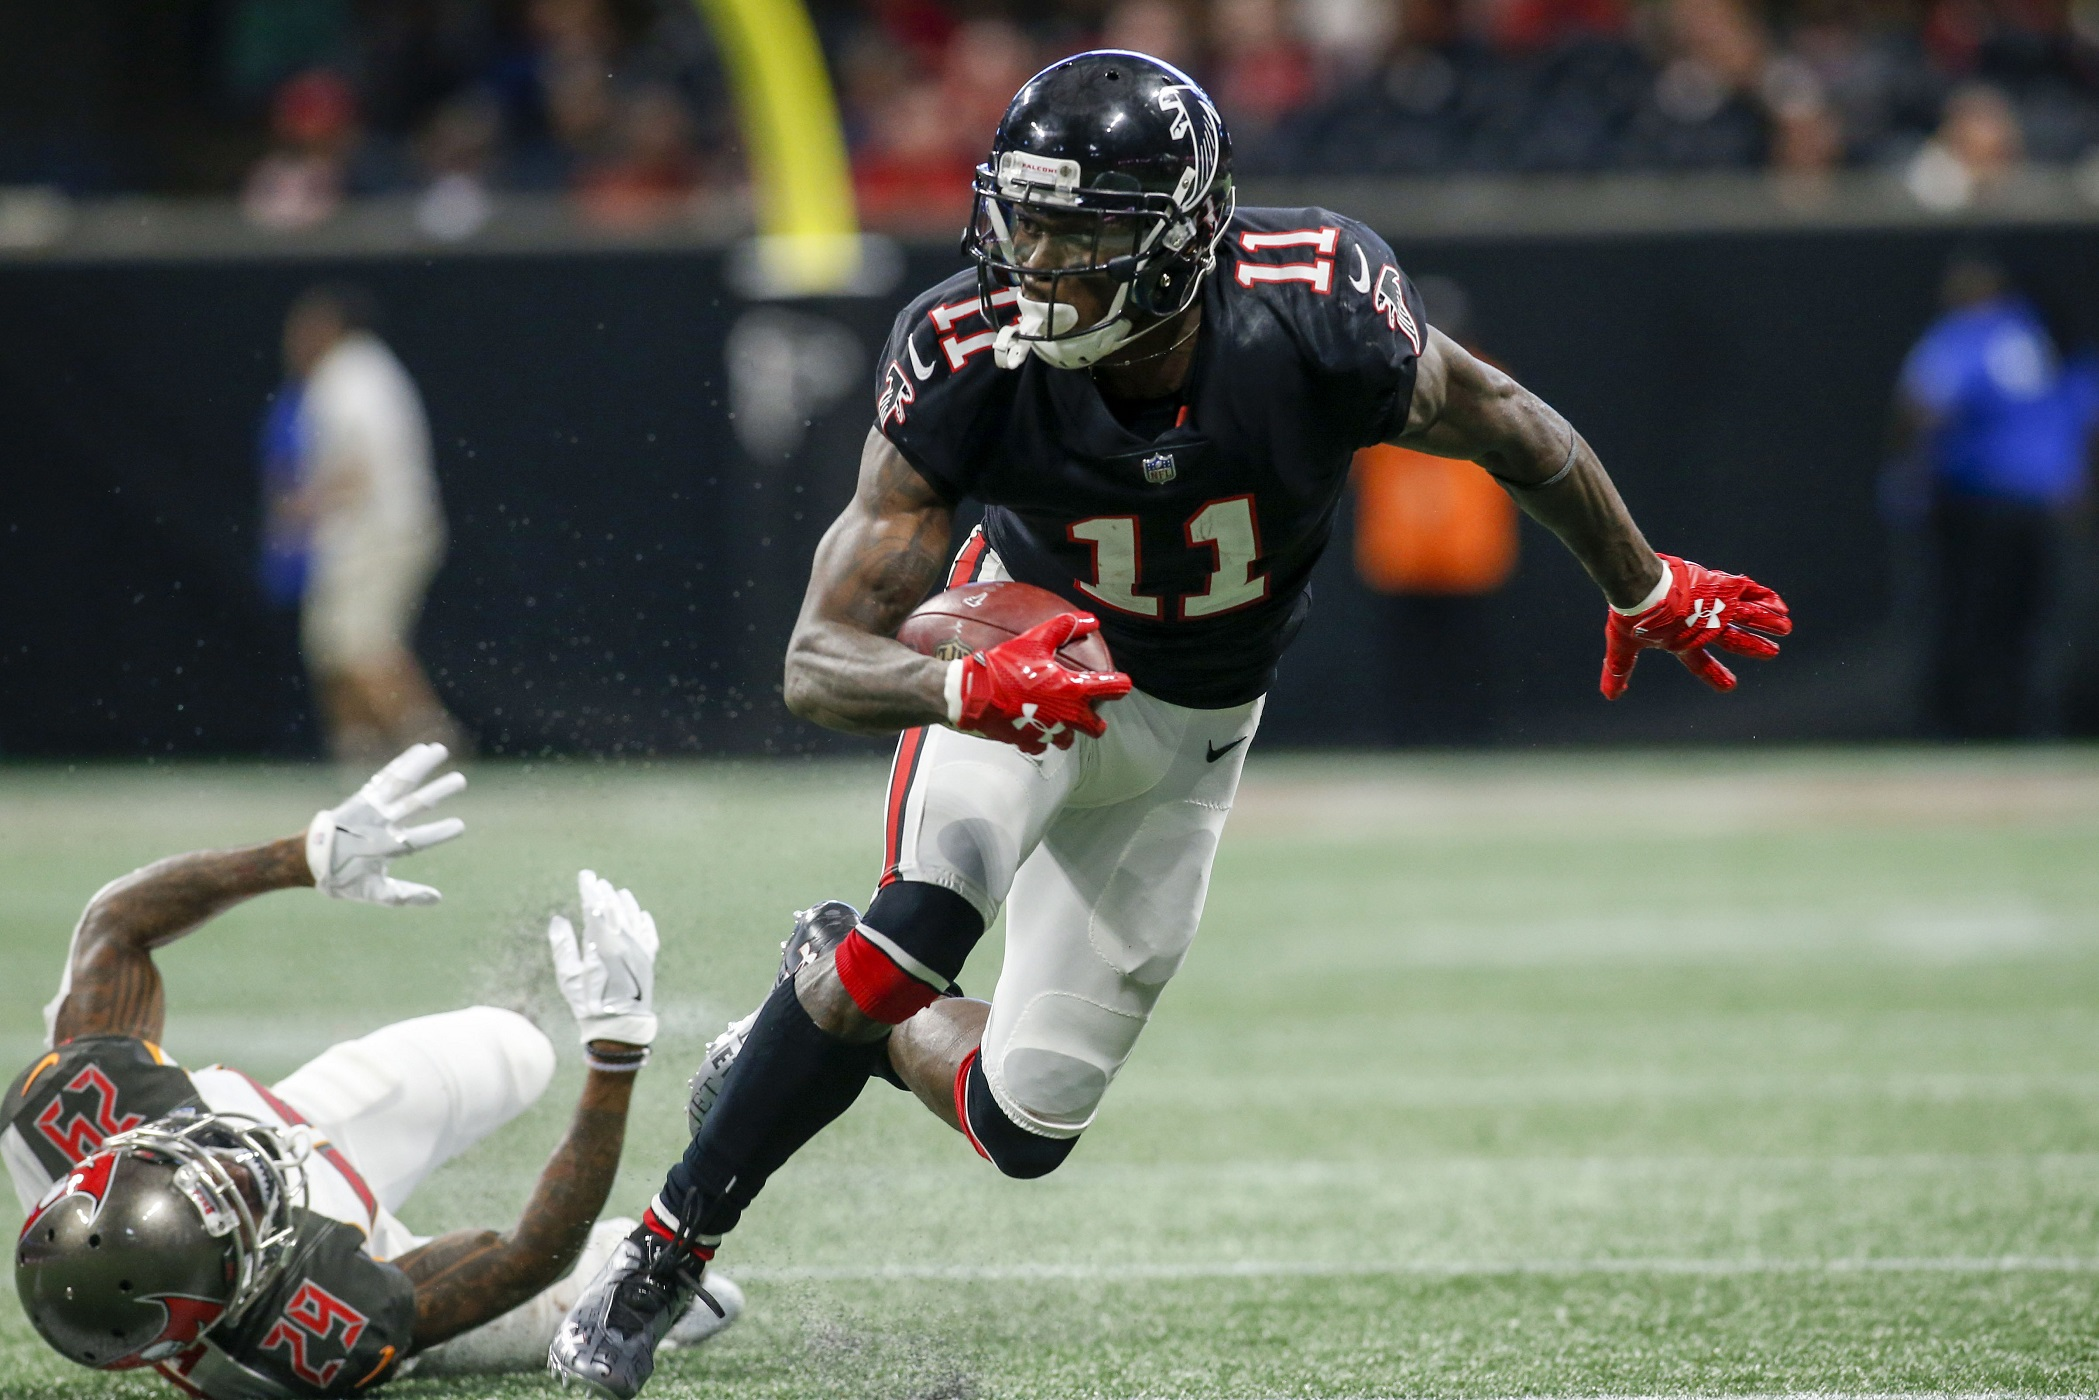 Nov   Atlanta Ga Usa Atlanta Falcons Wide Receiver Julio Jones  Runs After A Catch Against The Tampa Bay Buccaneers In The Fourth Quarter At